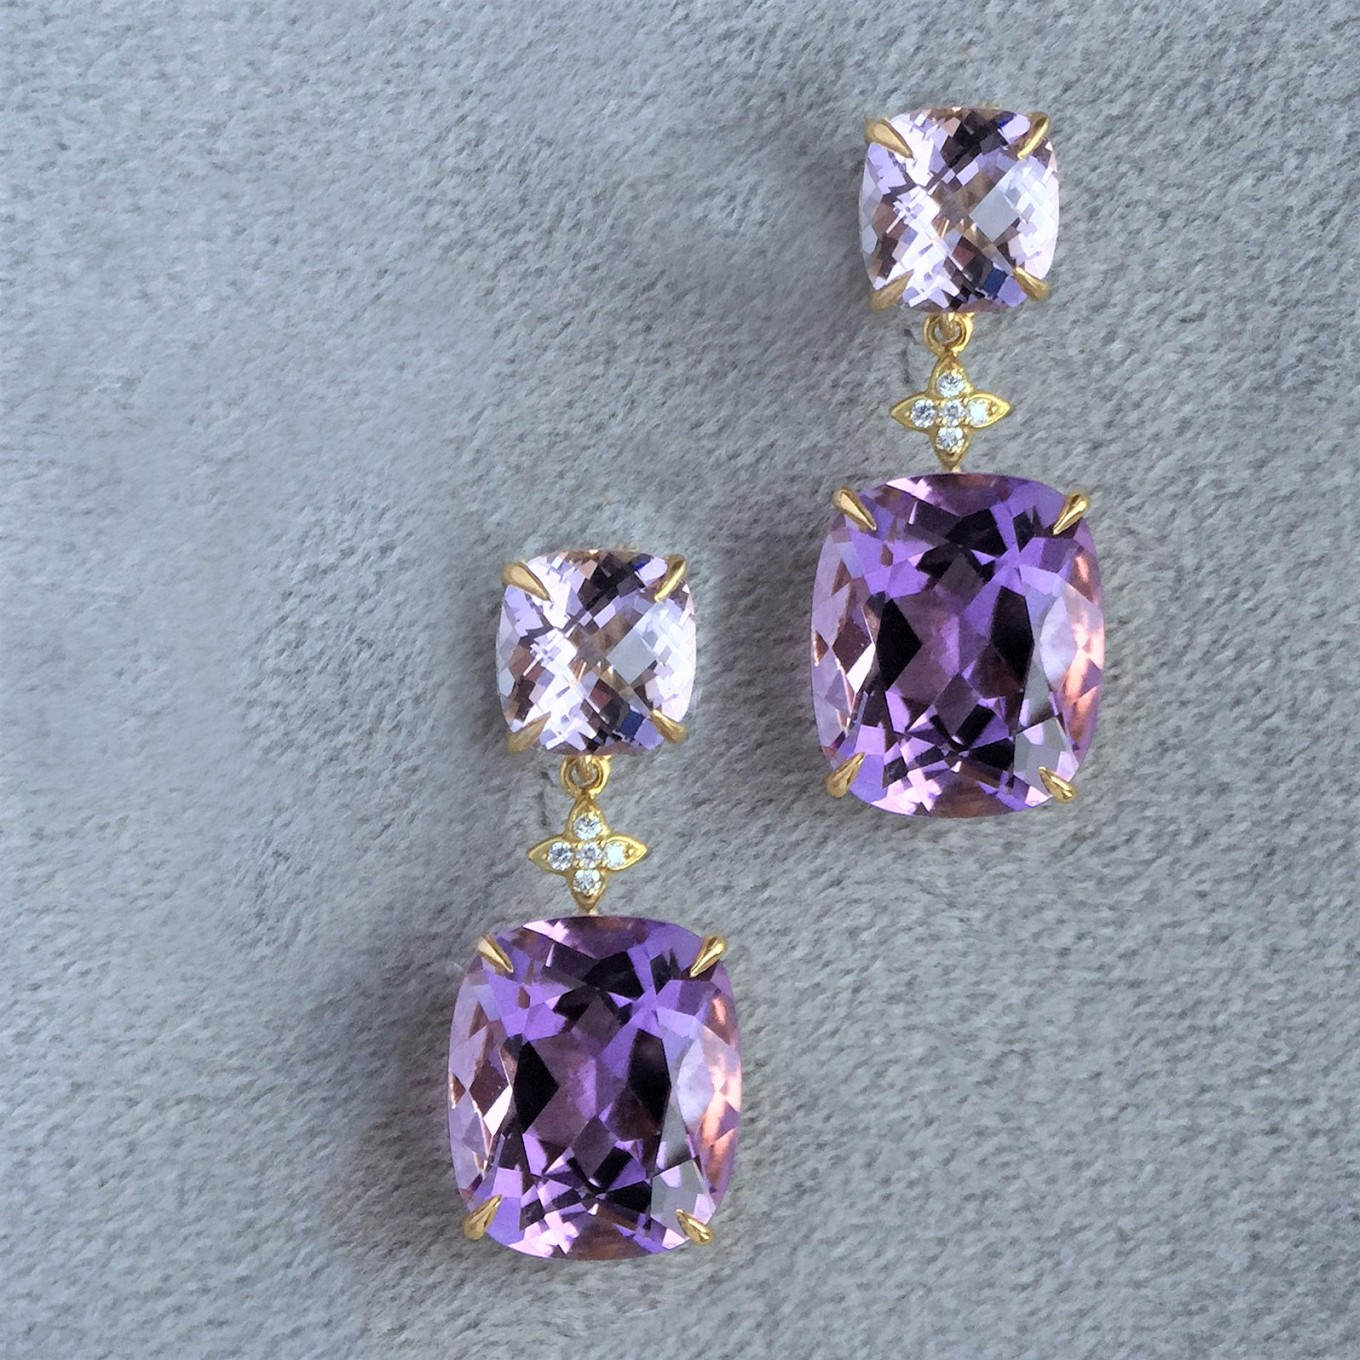 Cushion shaped & oval amethyst earrings with detachable drops in   yellow gold & diamonds